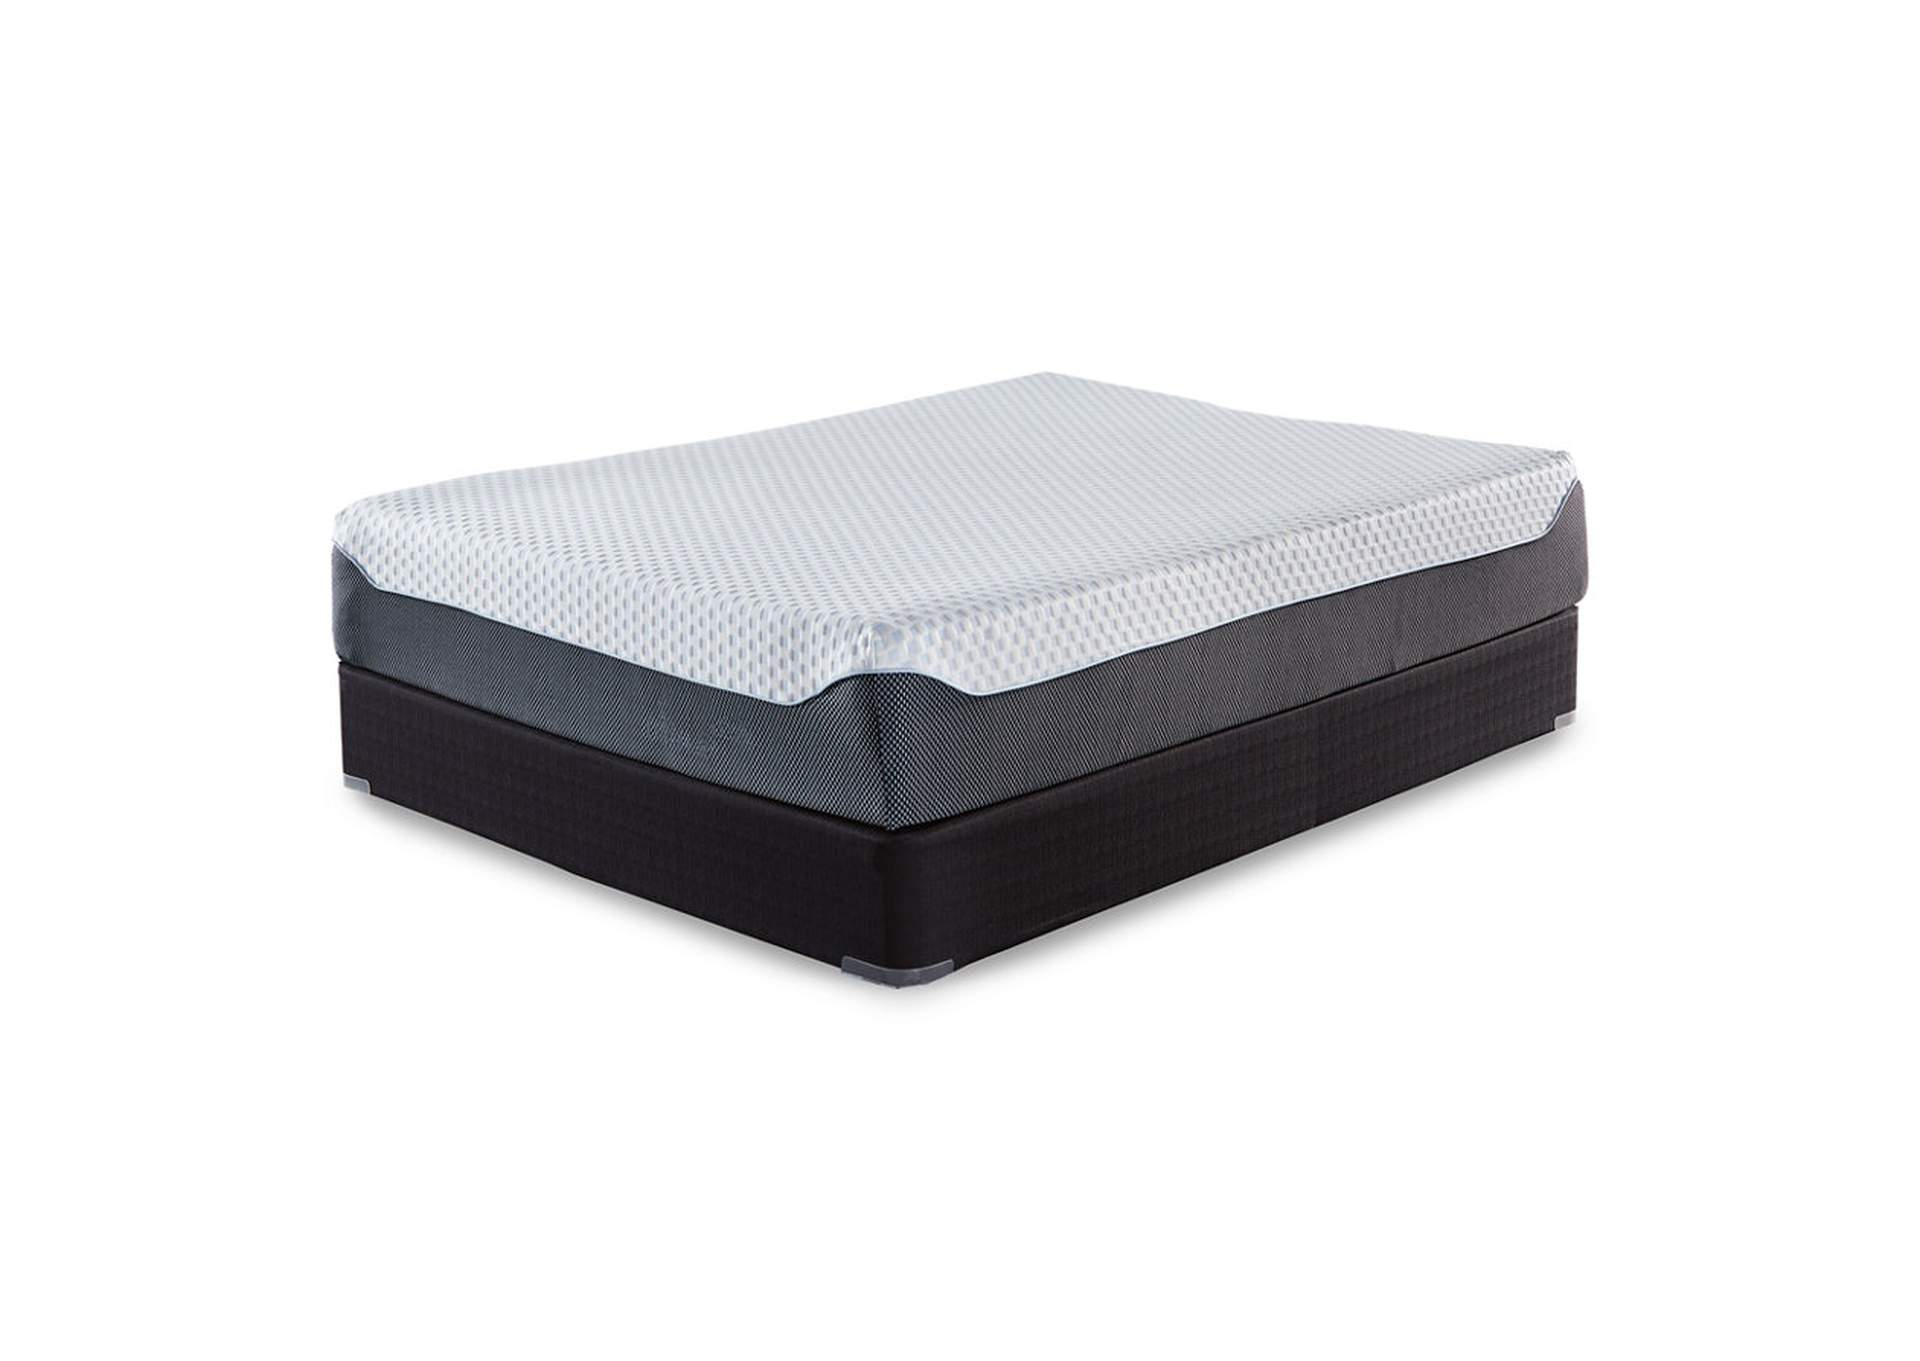 12 Inch Chime Elite Memory Foam King Mattress w/Foundation,Sierra Sleep by Ashley